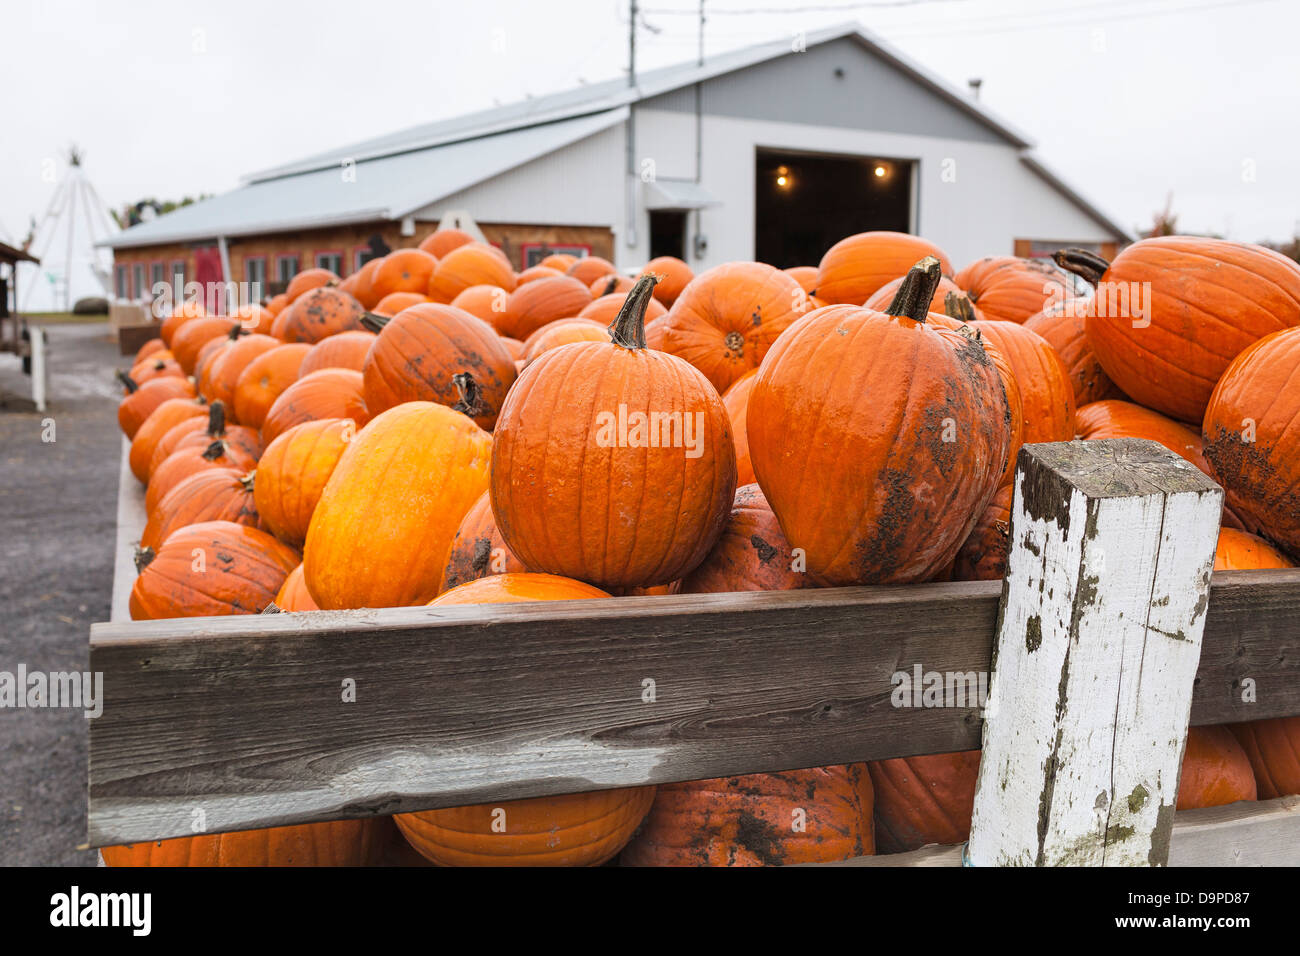 Pumpkins, Eastern Townships, Quebec, Canada - Stock Image